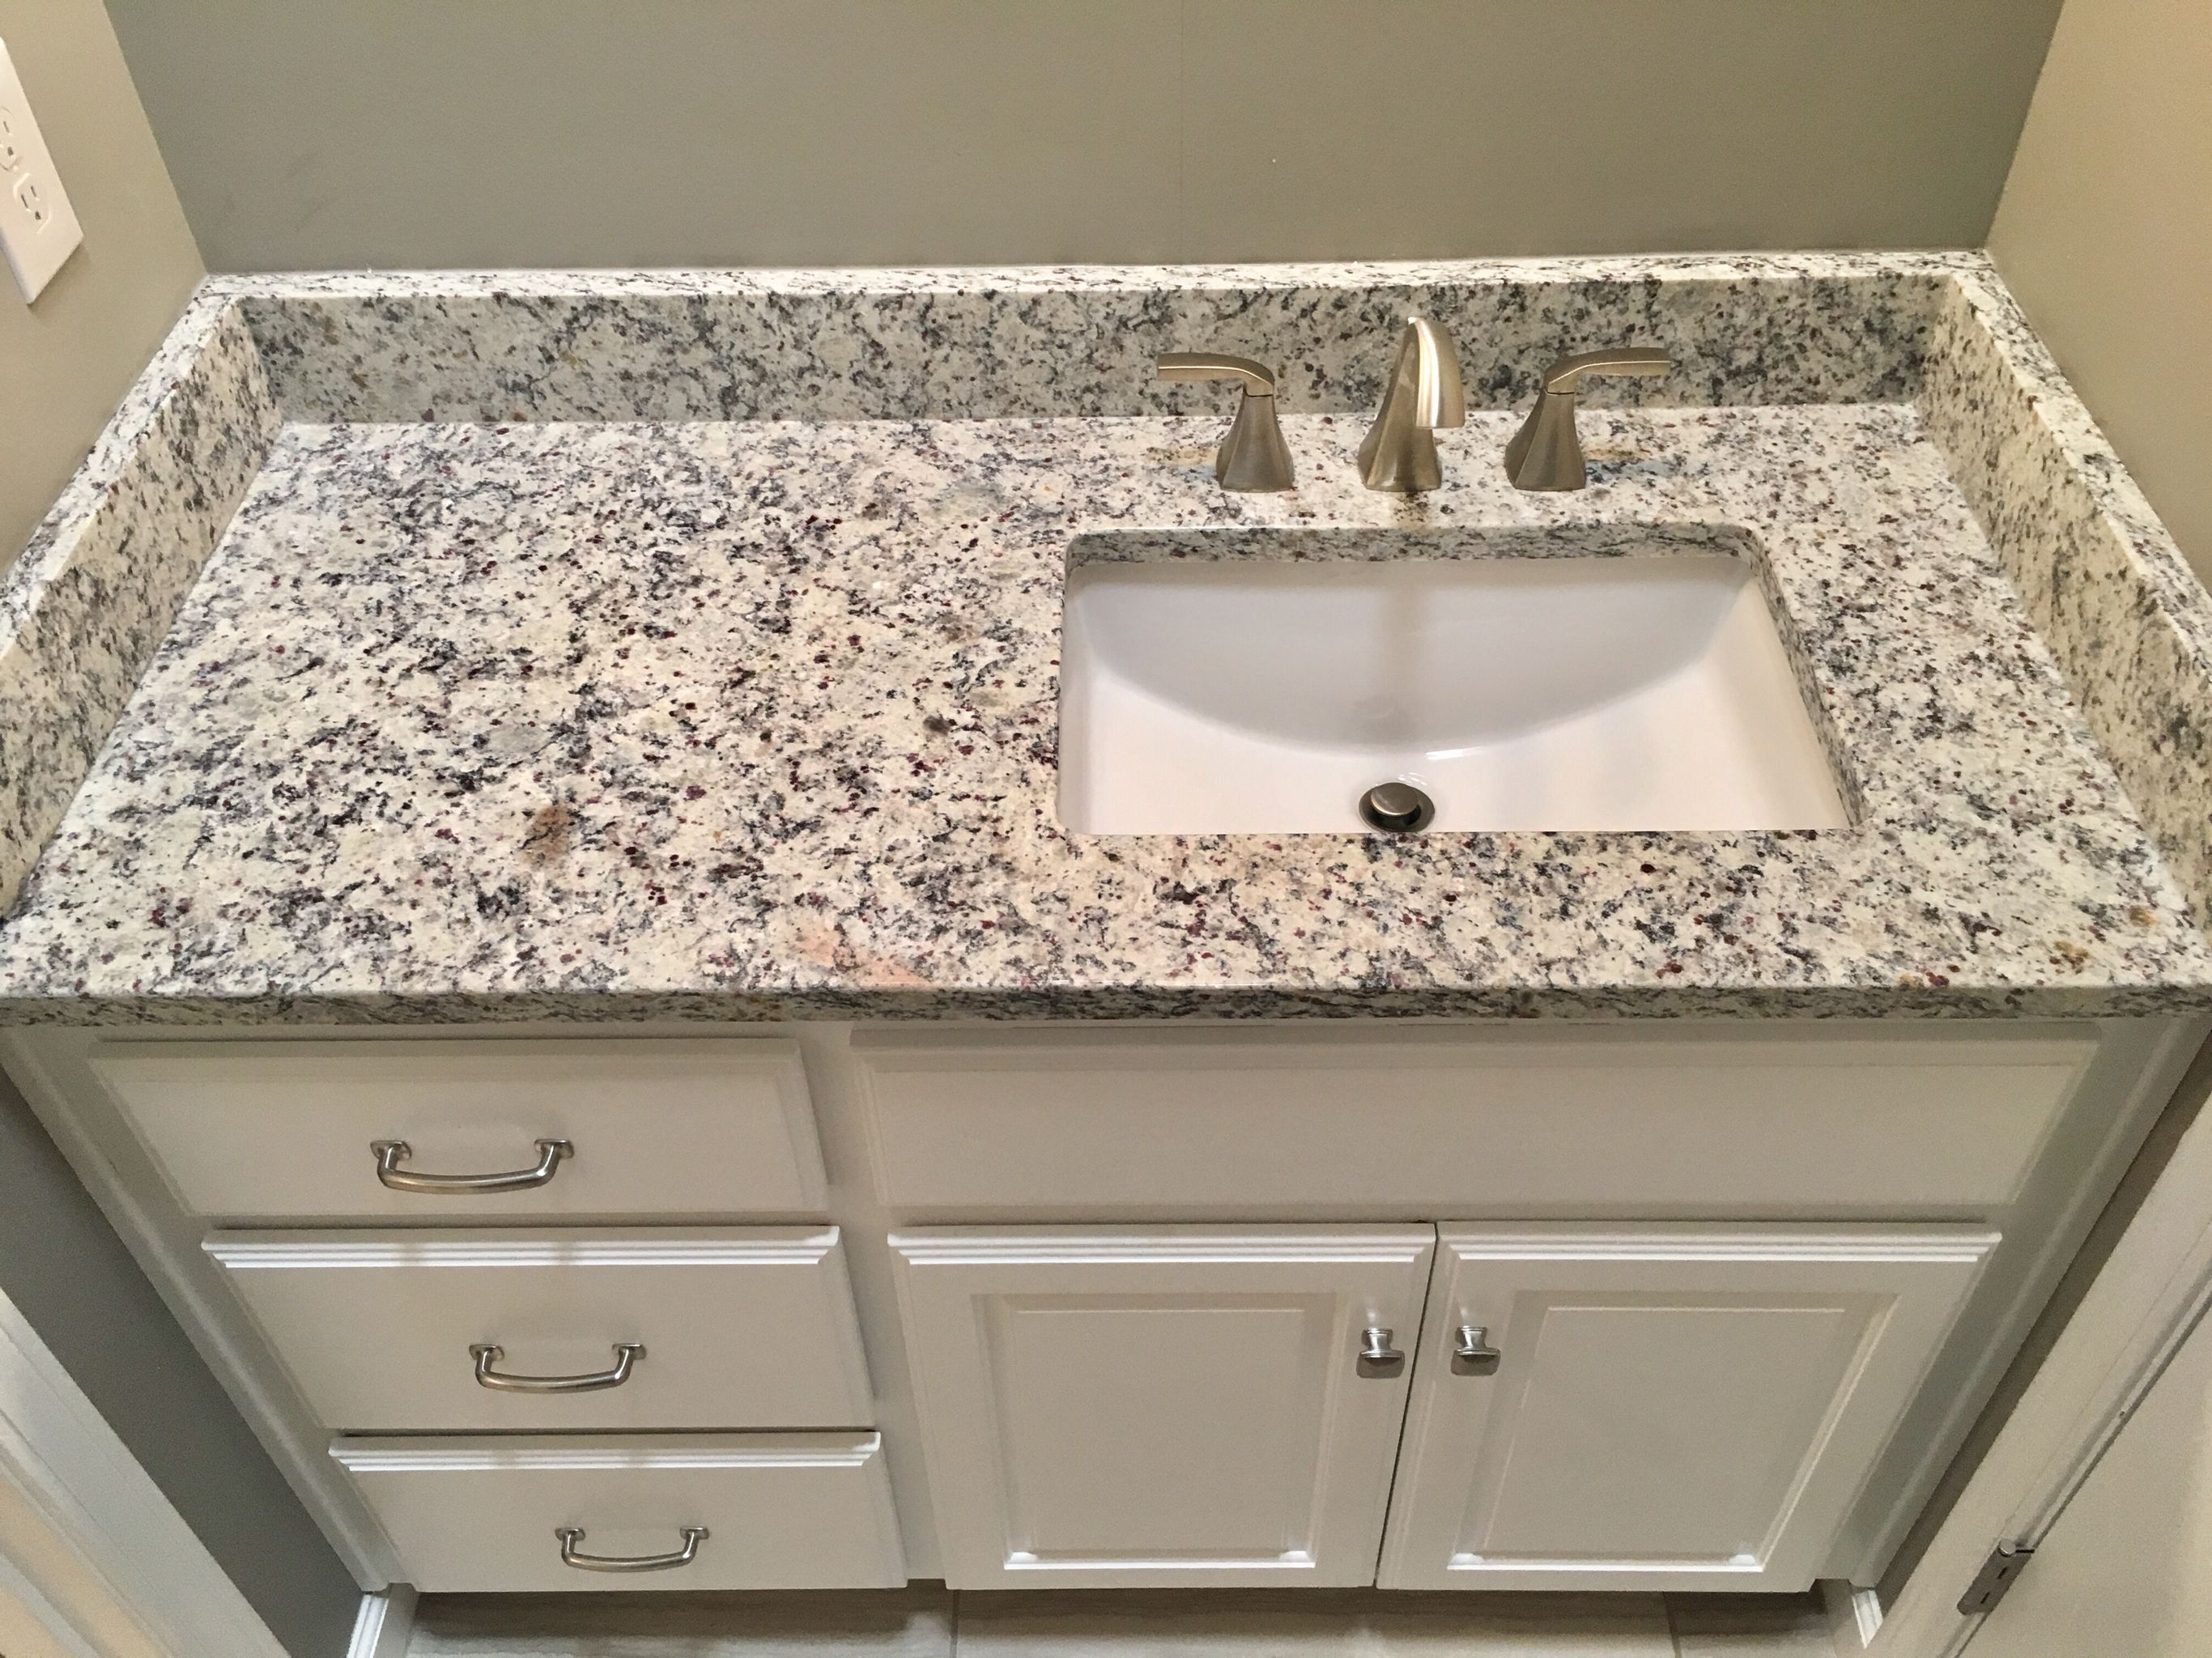 Ashen White Granite Countertops Moen 8 Quot Widespread Faucet